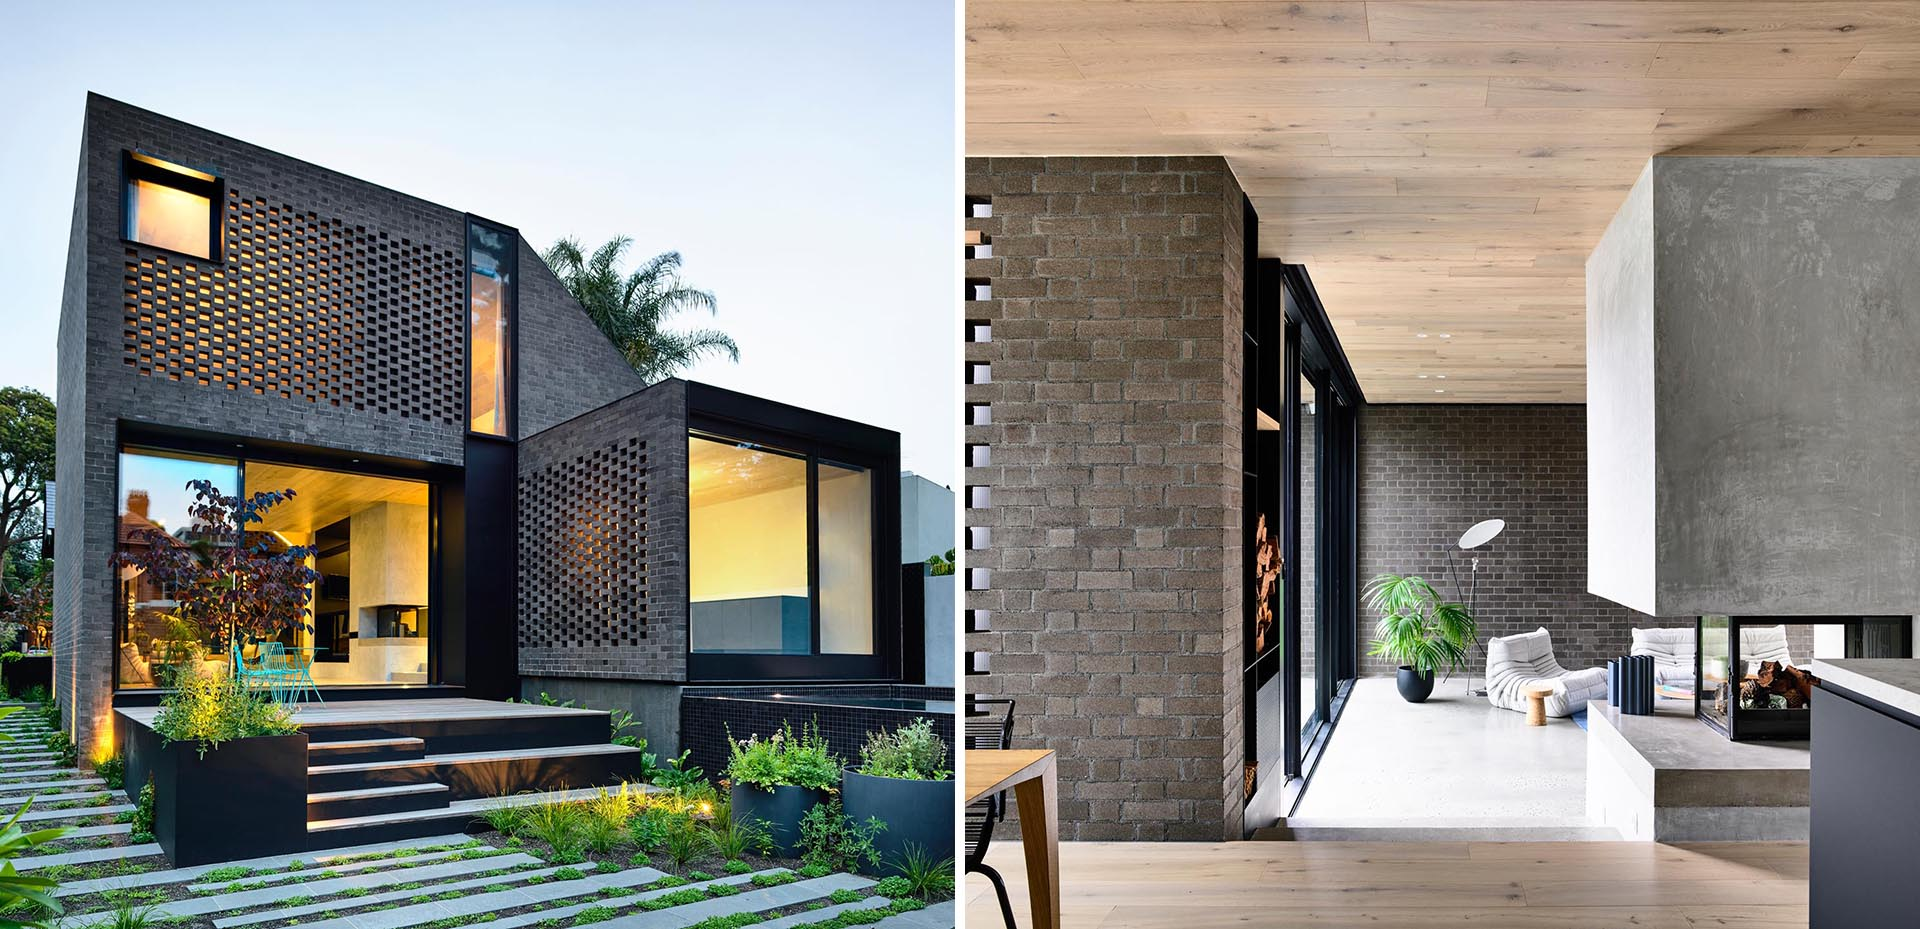 A Dark Brick Addition Creates More Living Space For This Home